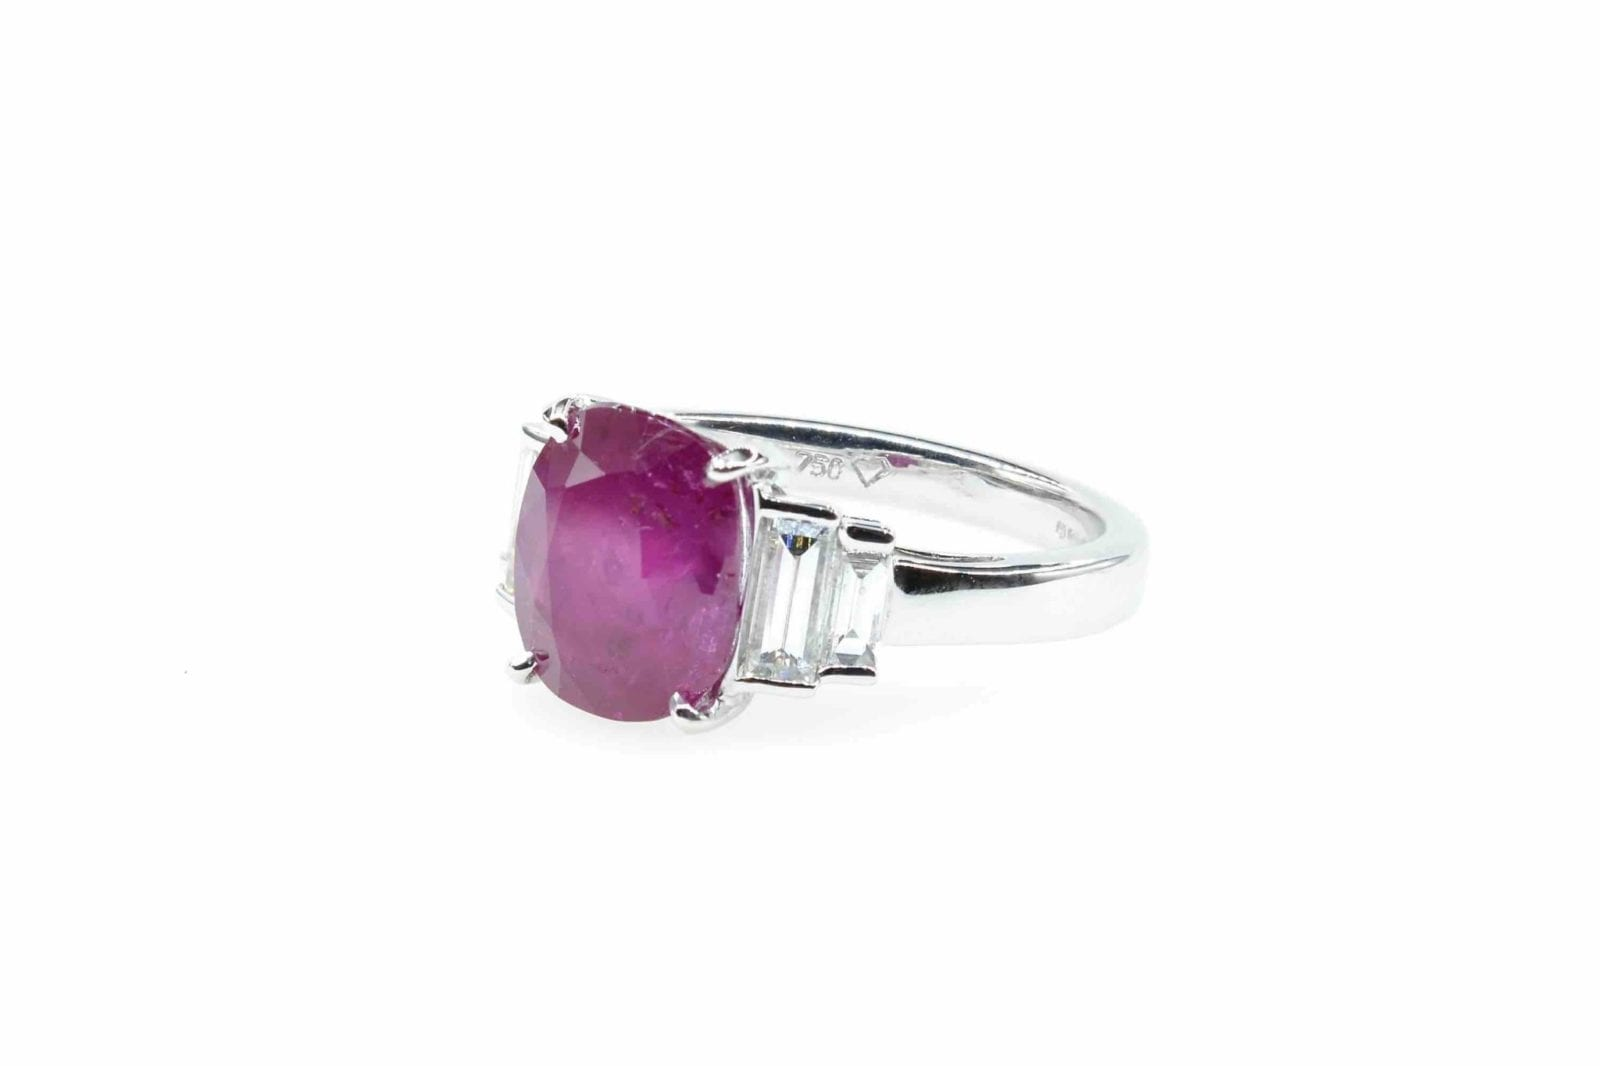 Bague rubis birman naturel